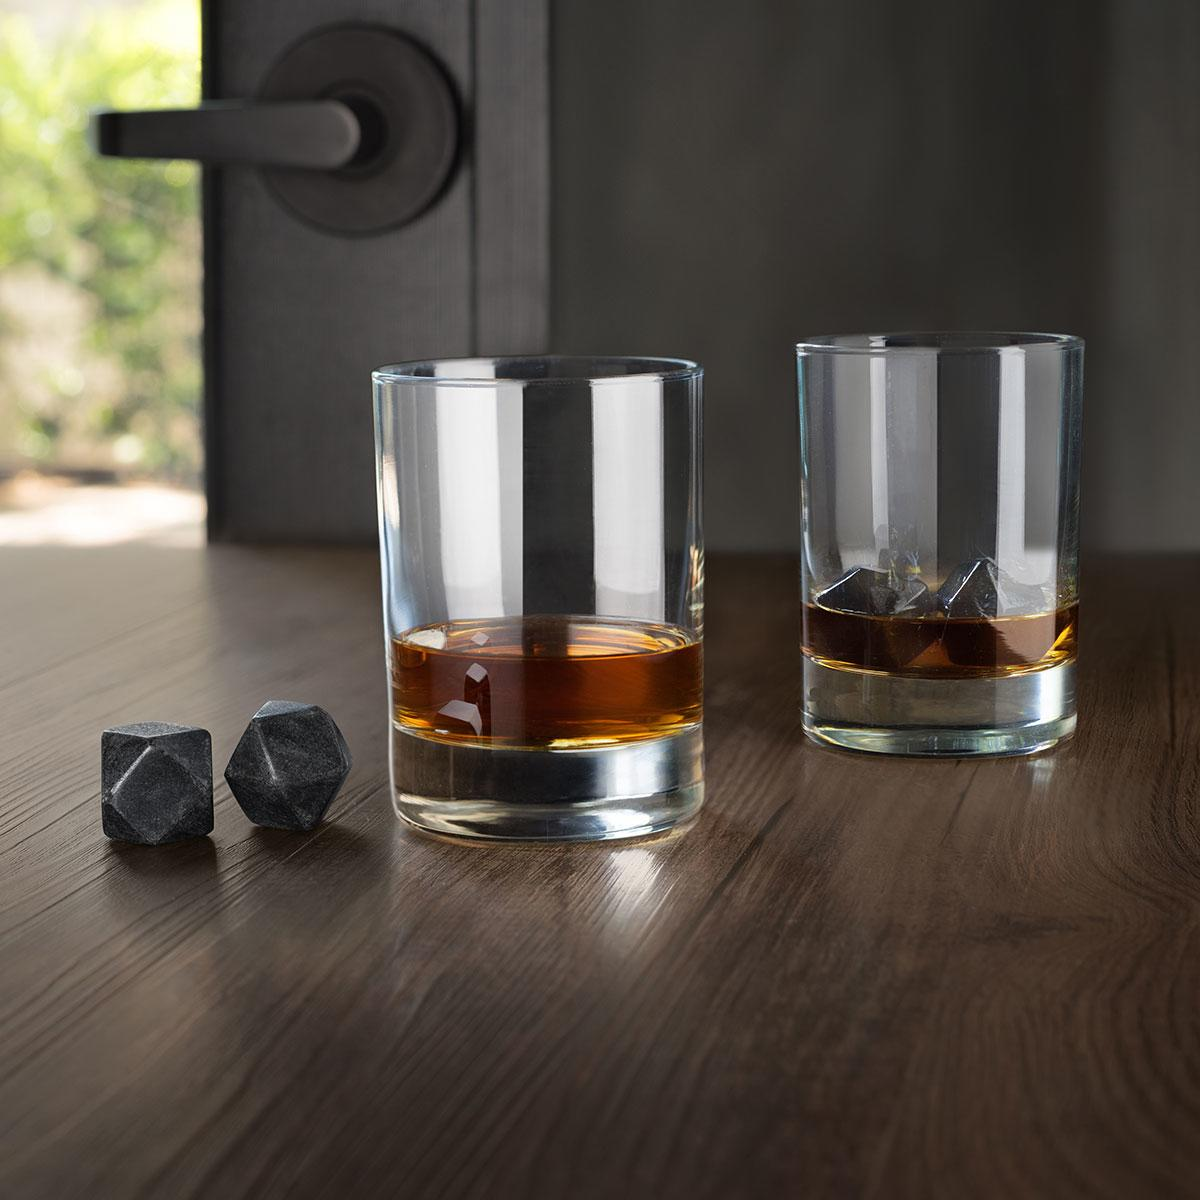 Uberstar Hex Whisky Stones - 4x Basalt Stones & Cotton Bag - £14.99